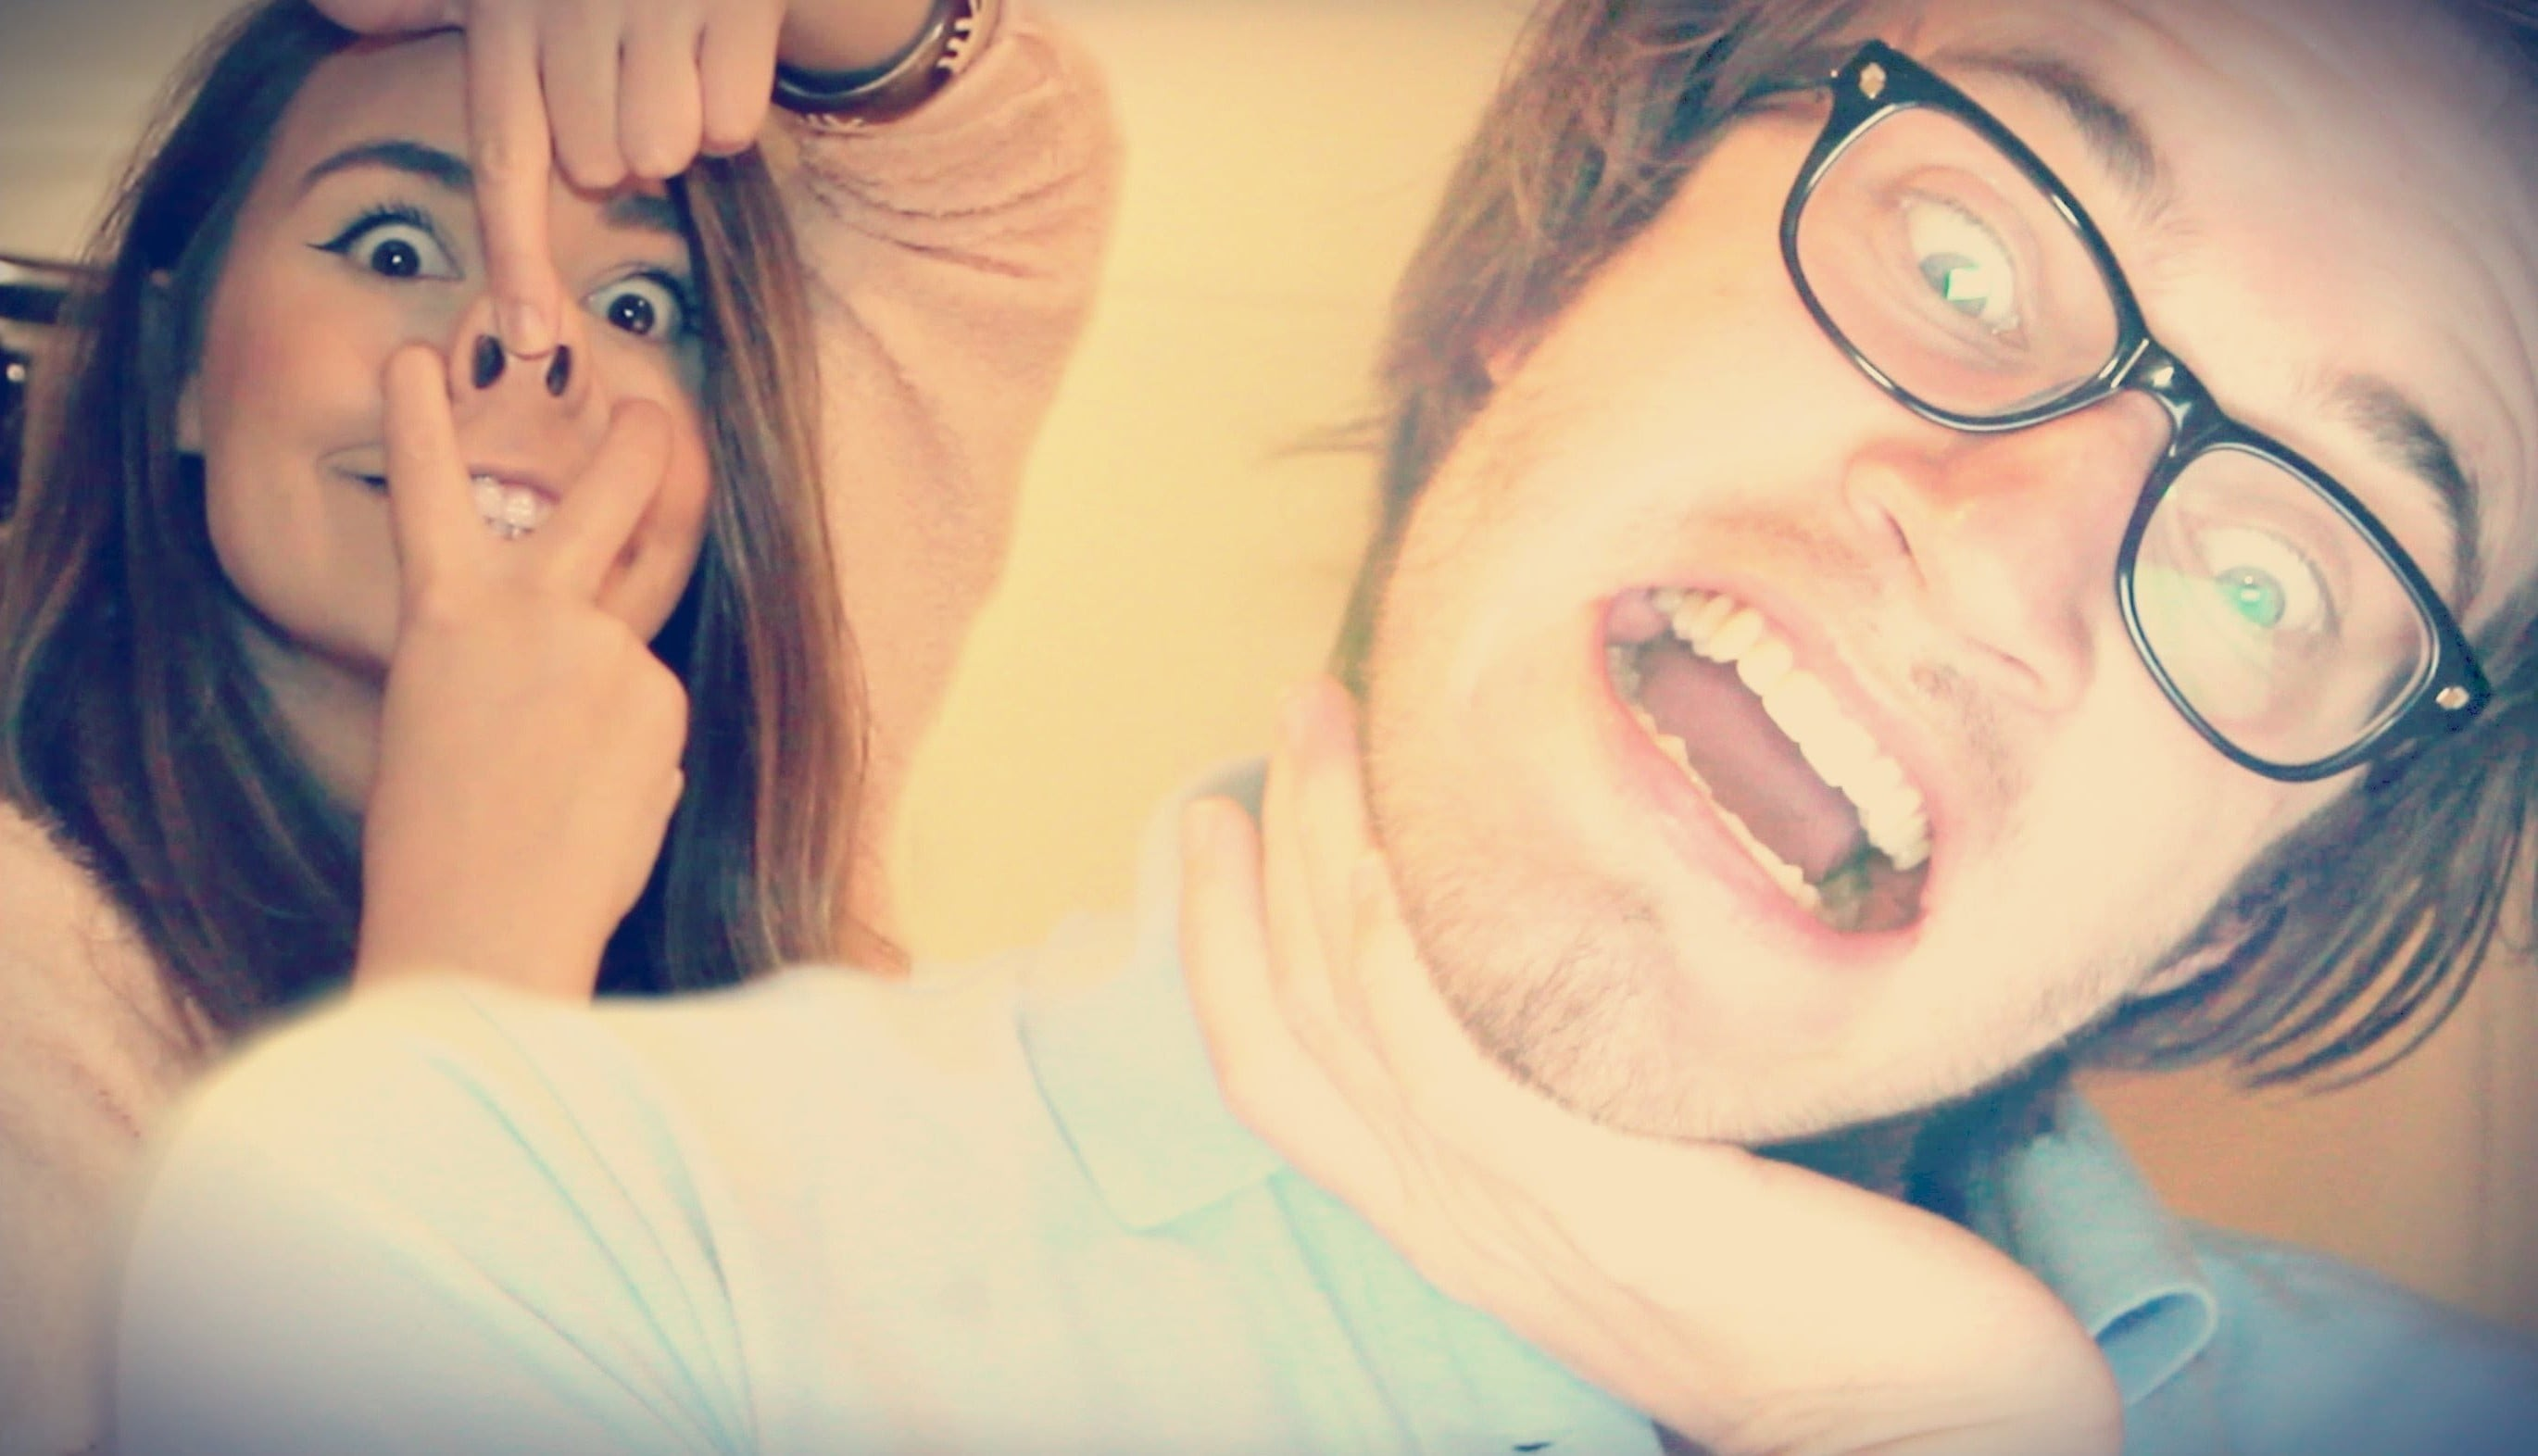 Pewdiepie & Marzia funny faces, A wallpaper of Pewds and Marzia making  silly faces